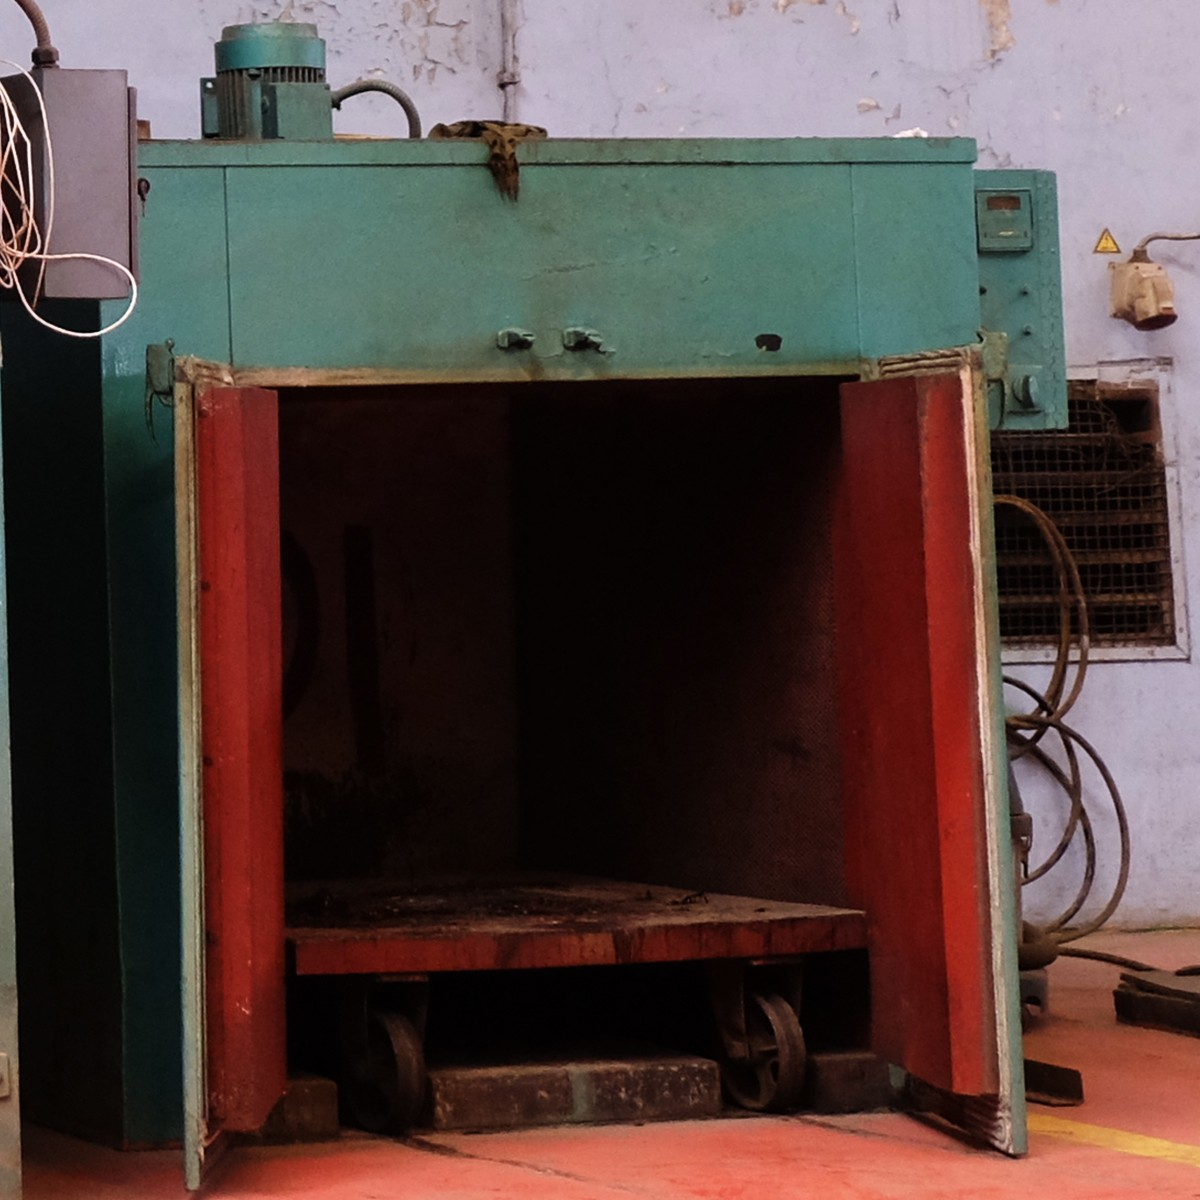 small-oven.jpg